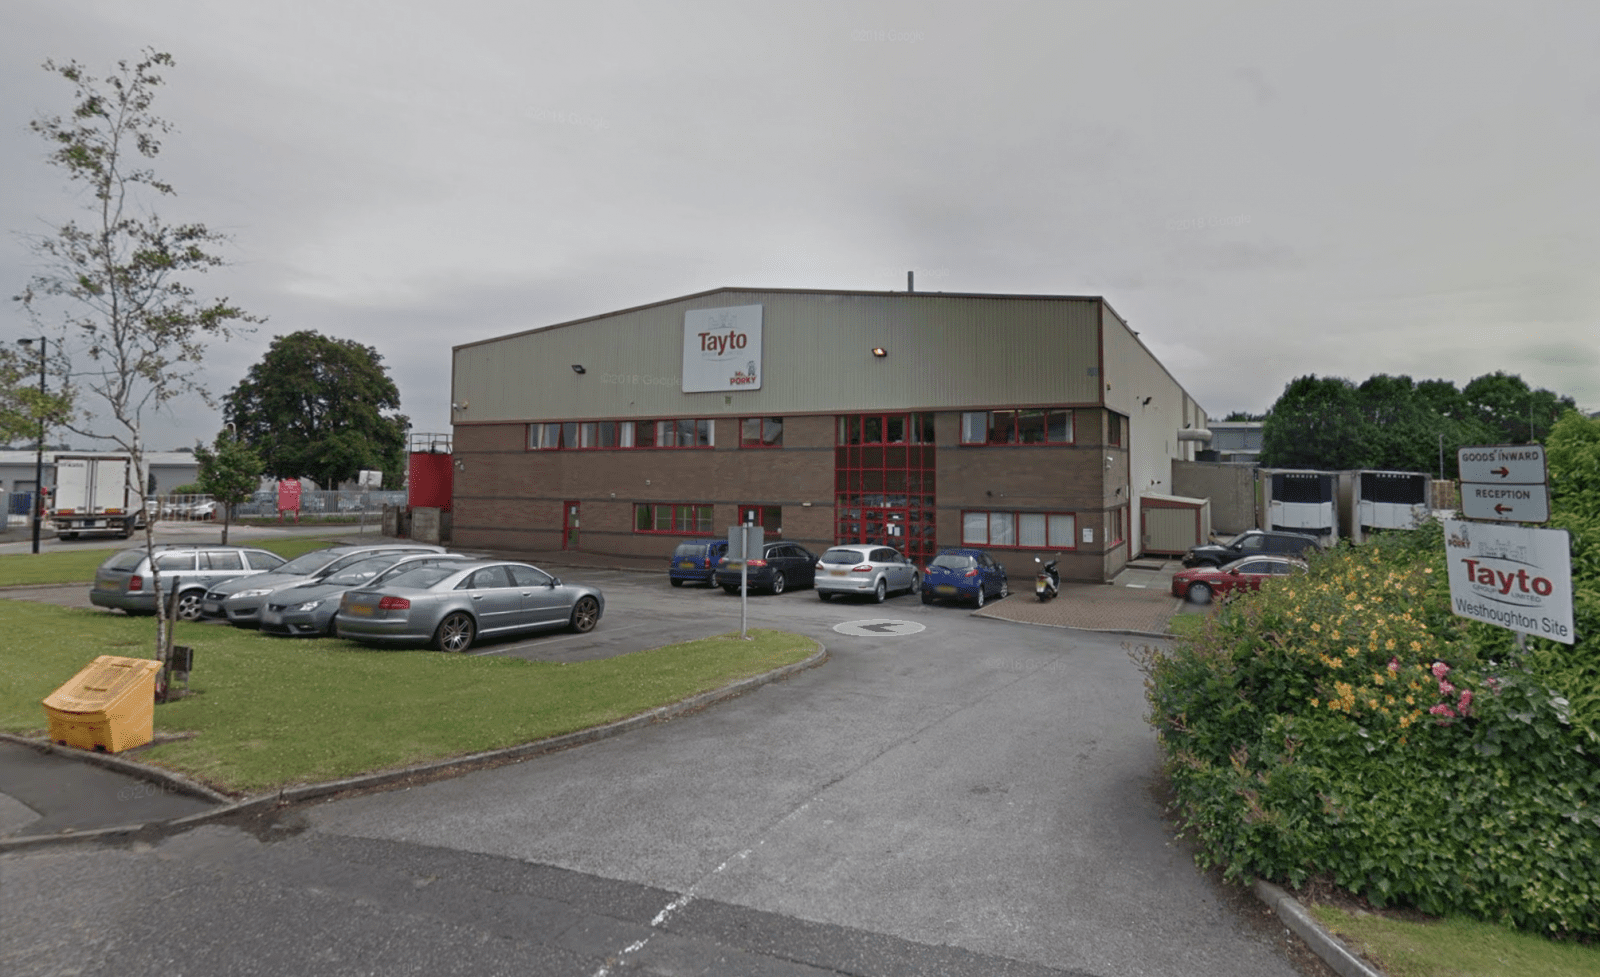 Nearly 200 people taken ill after salmonella outbreak at a Bolton factory, The Manc